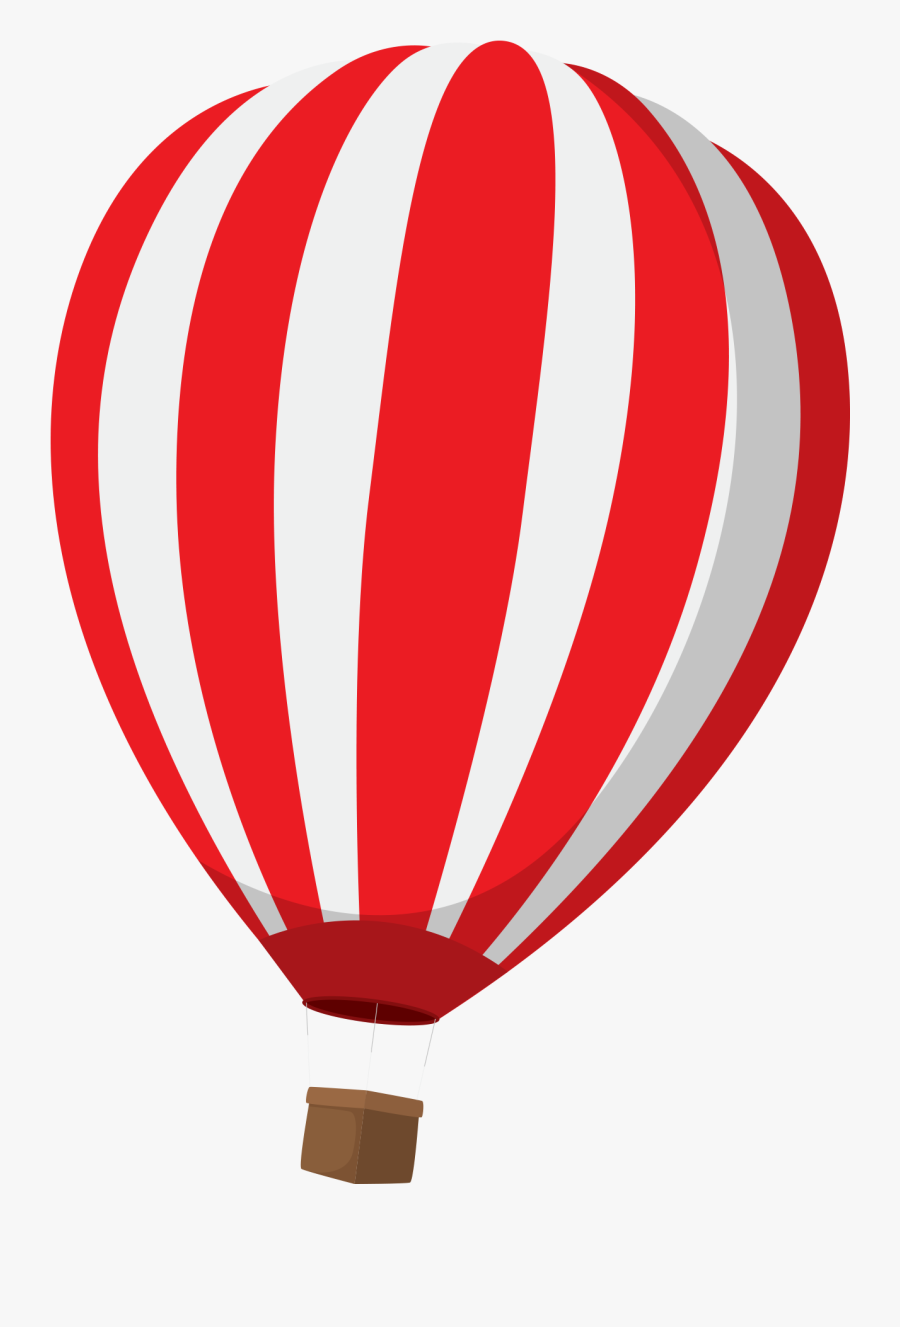 Hot Air Balloon Clipart Png Image Free Download Searchpng - Hot Air Balloon Png Clipart, Transparent Clipart